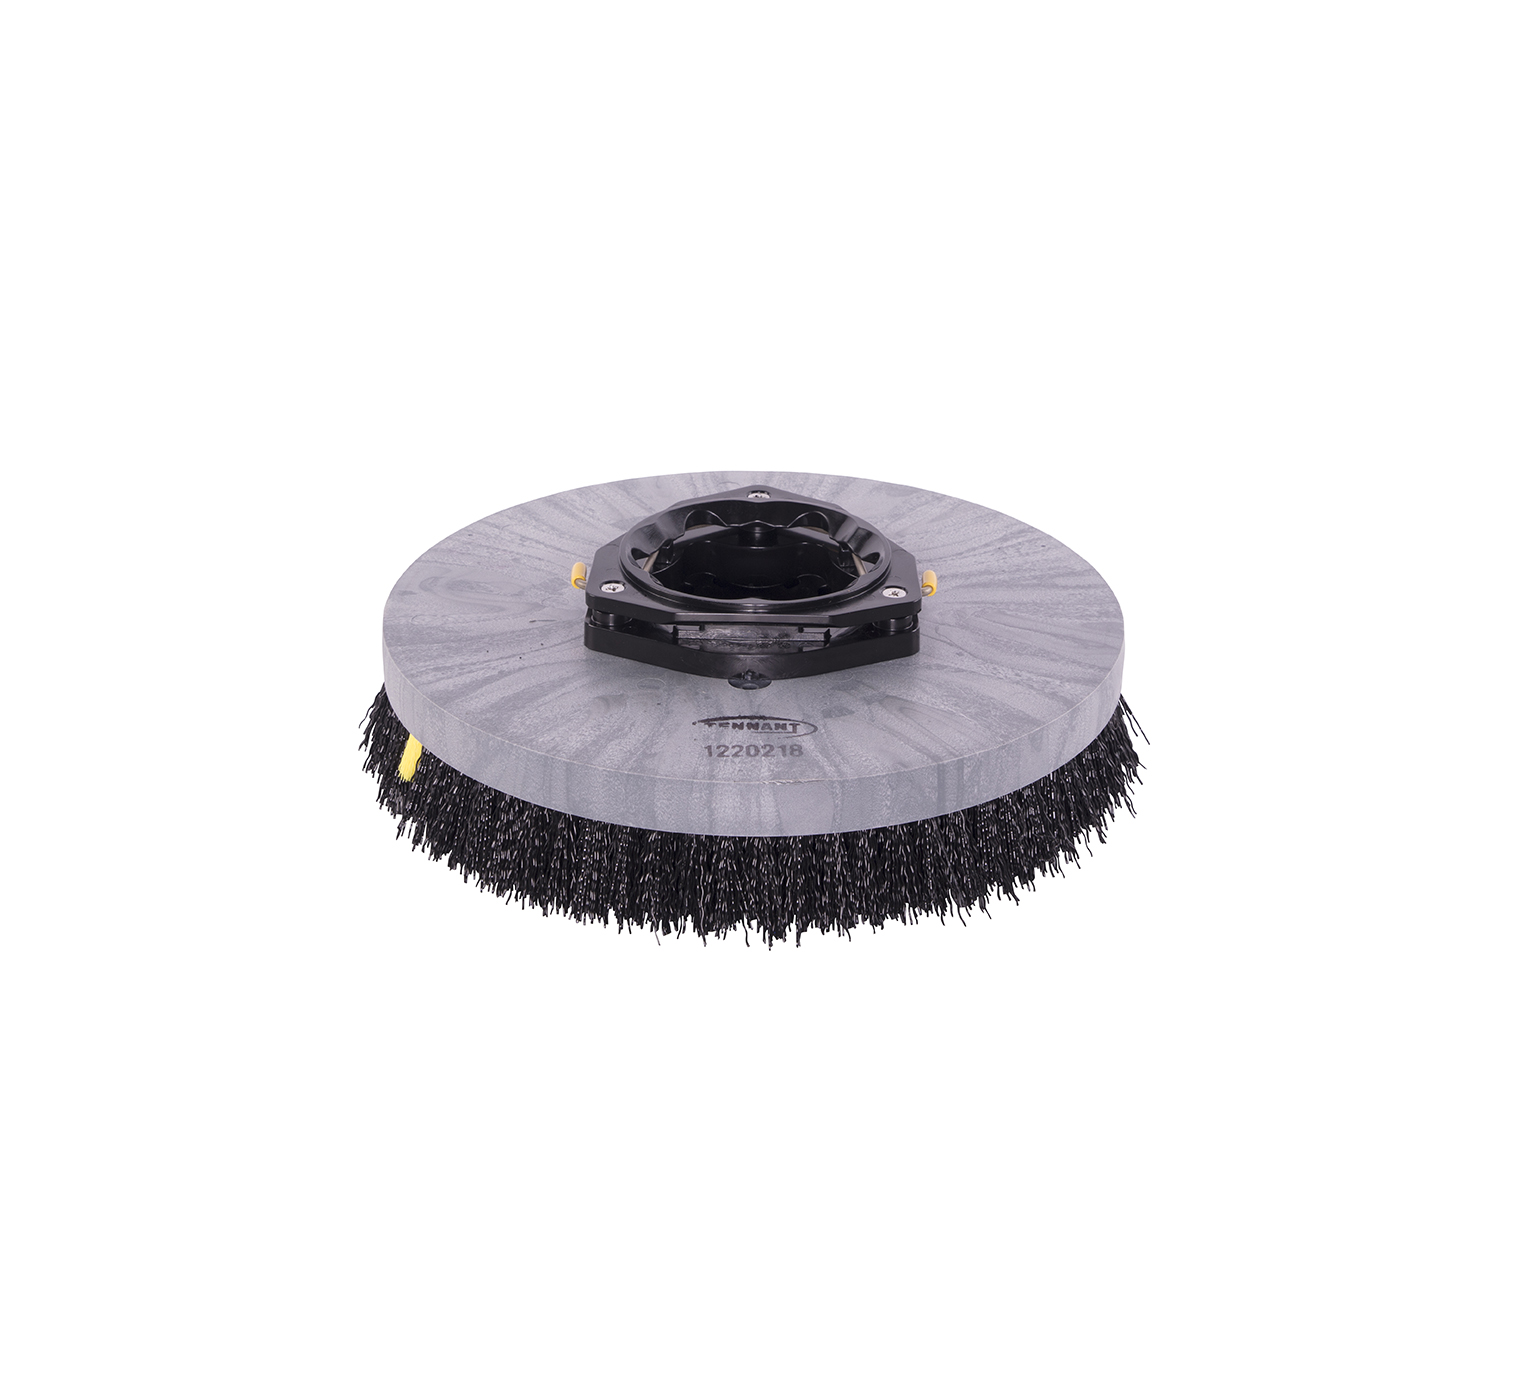 1220218 Polypropylene Disk Scrub Brush Assembly – 14 in / 356 mm alt 1